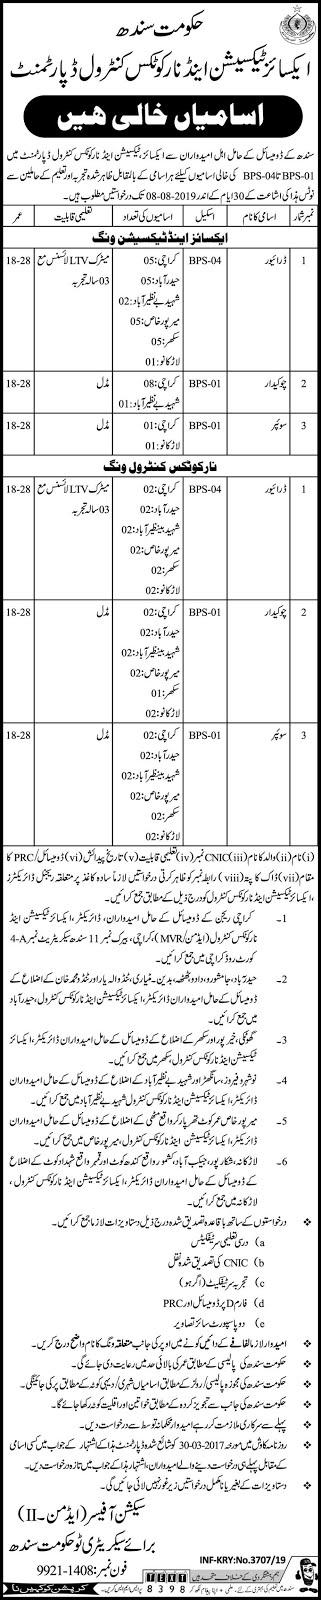 Excise Taxation And Narcotics Control Department Jobs 2019